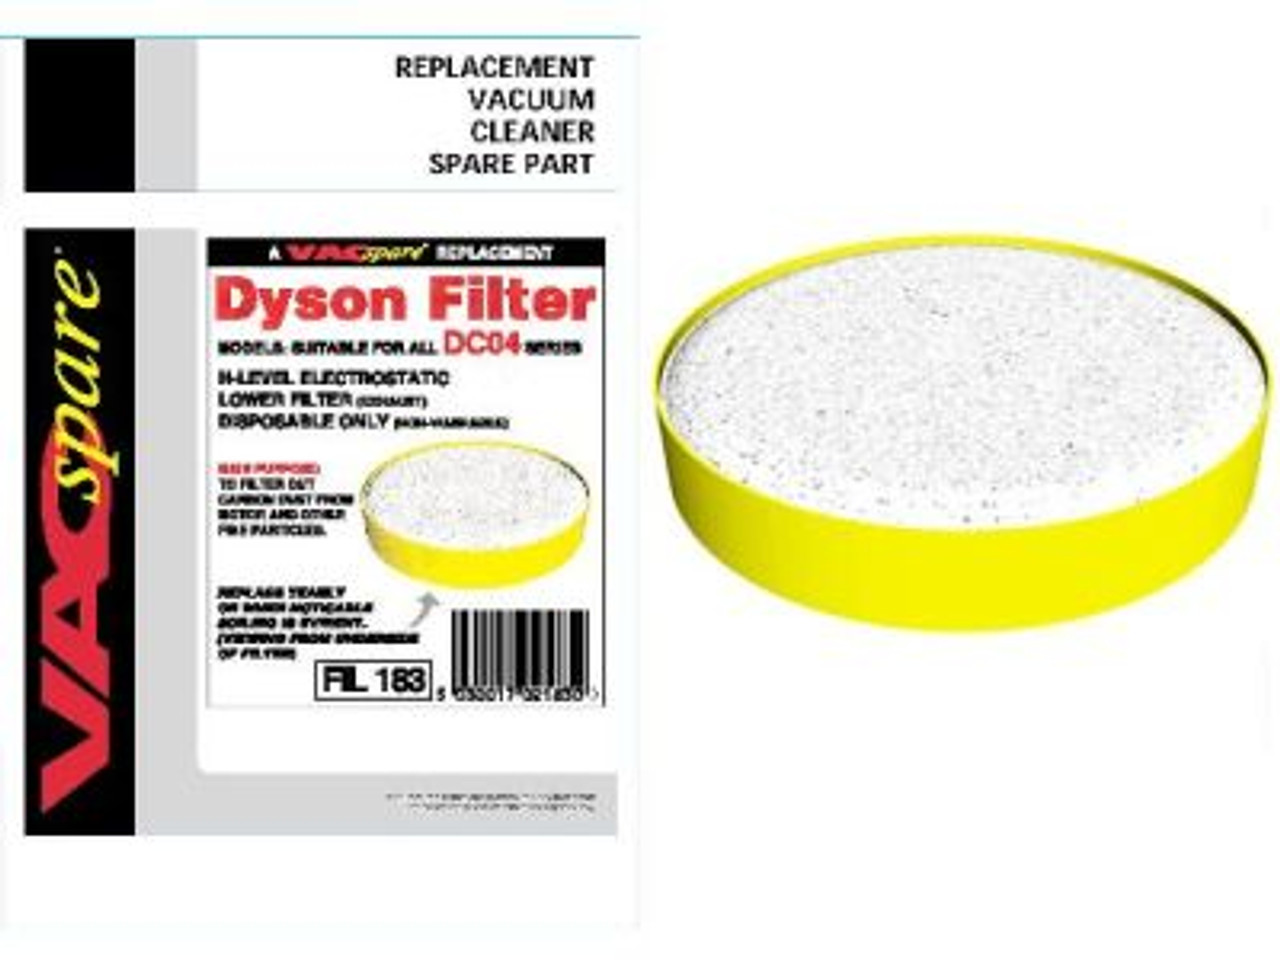 Dyson DC04 H Level Lower Filter - FIL183